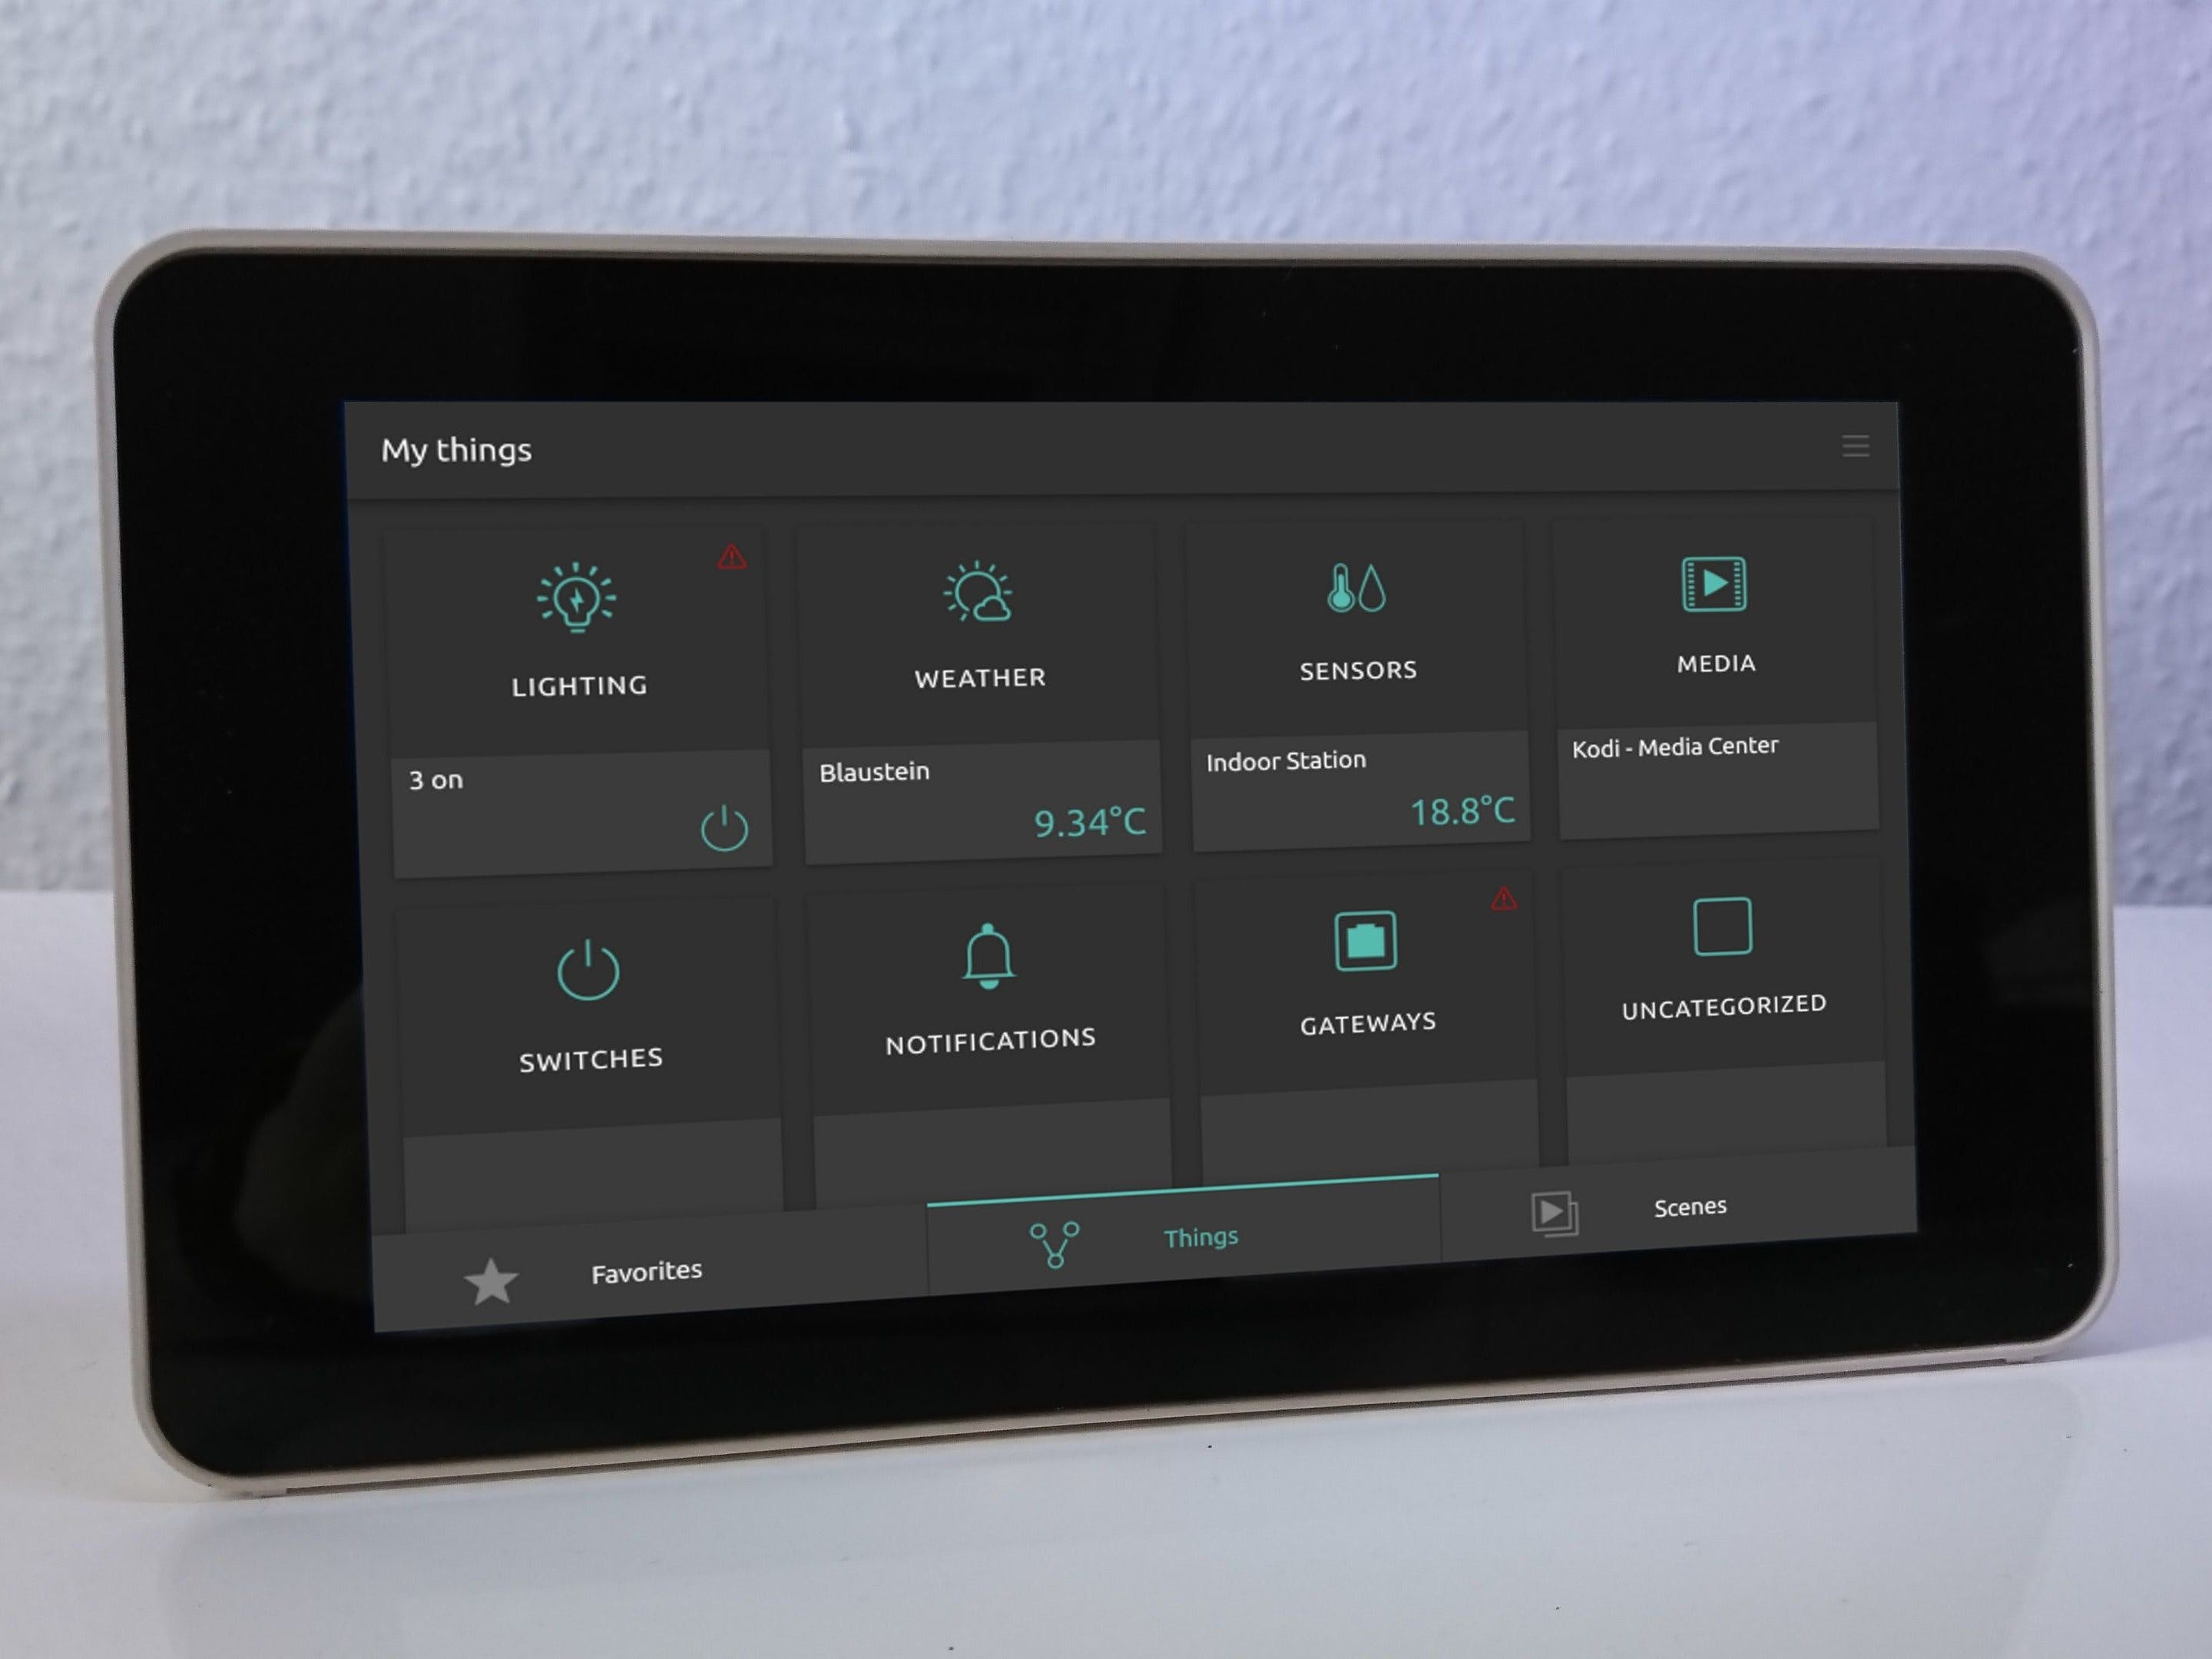 Open Source smart home with touch screen control panel